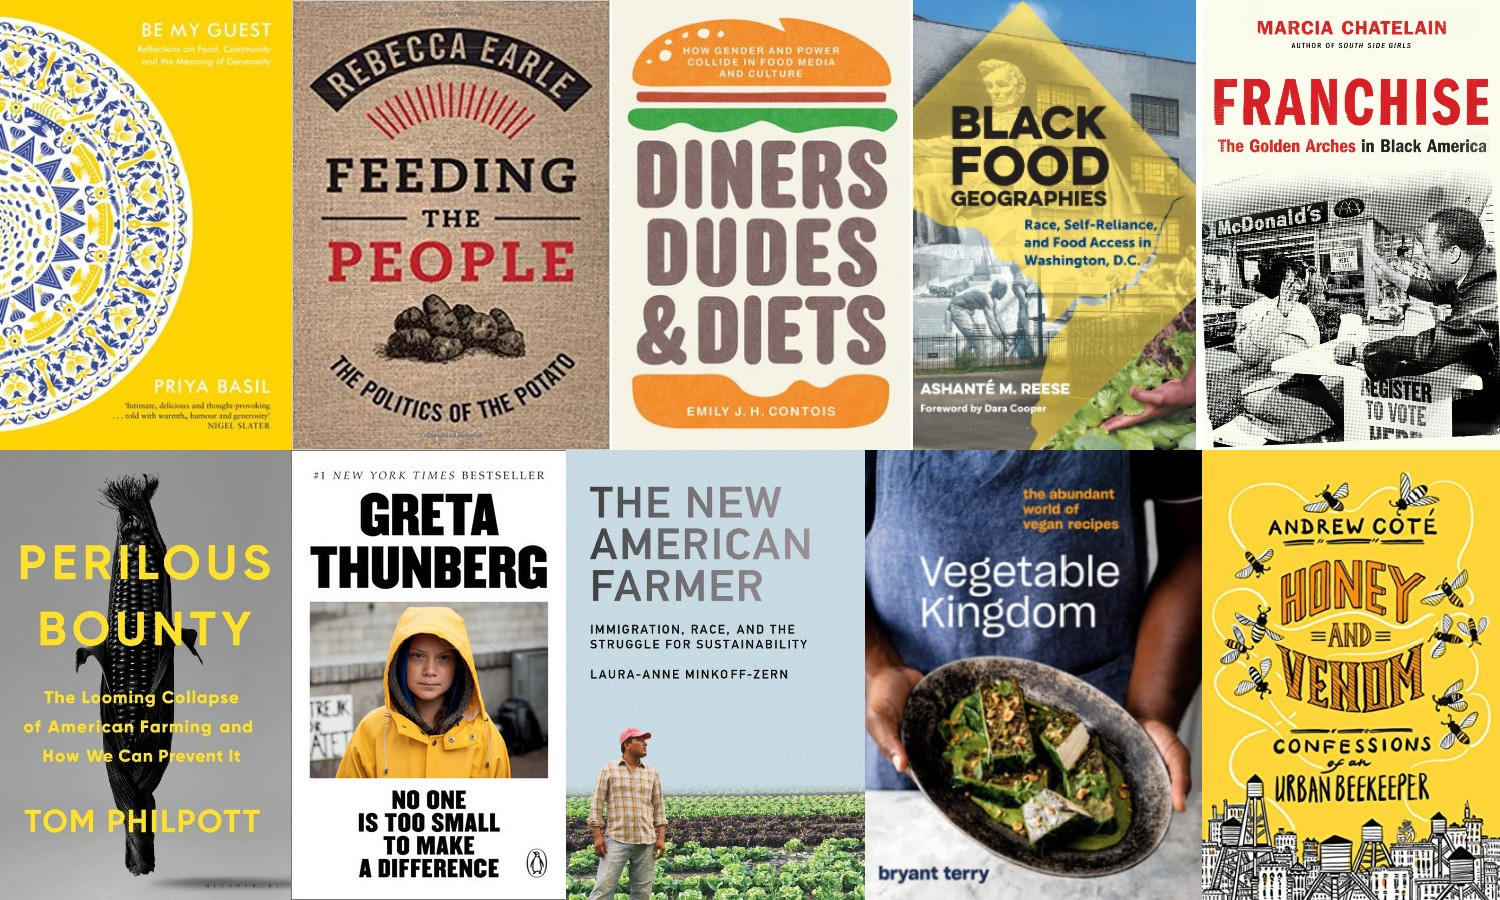 Food Tank's summer 2020 reading list includes books on a wide range of topics, including food access in Black communities, emergency relief, and tech.